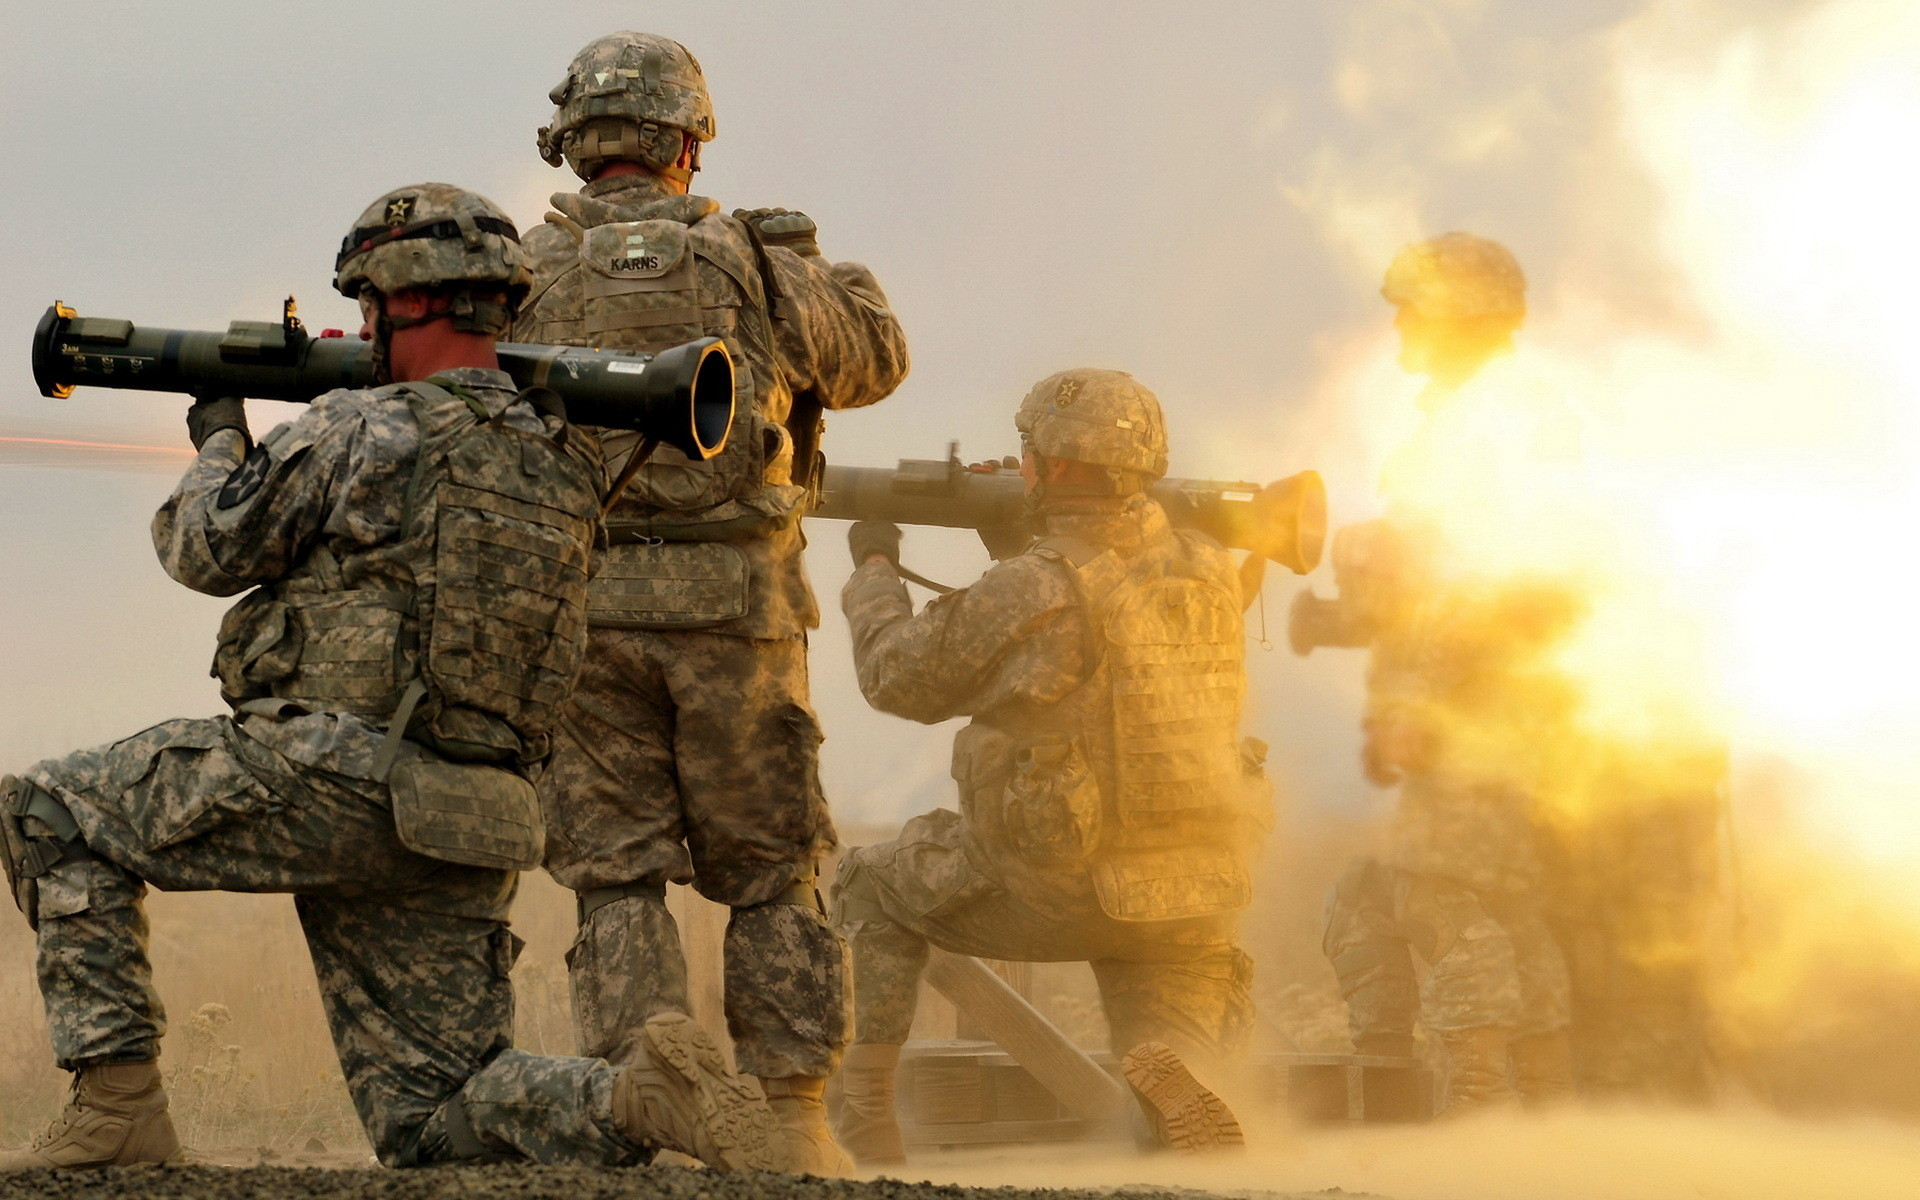 The soldiers fired from grenade launchers